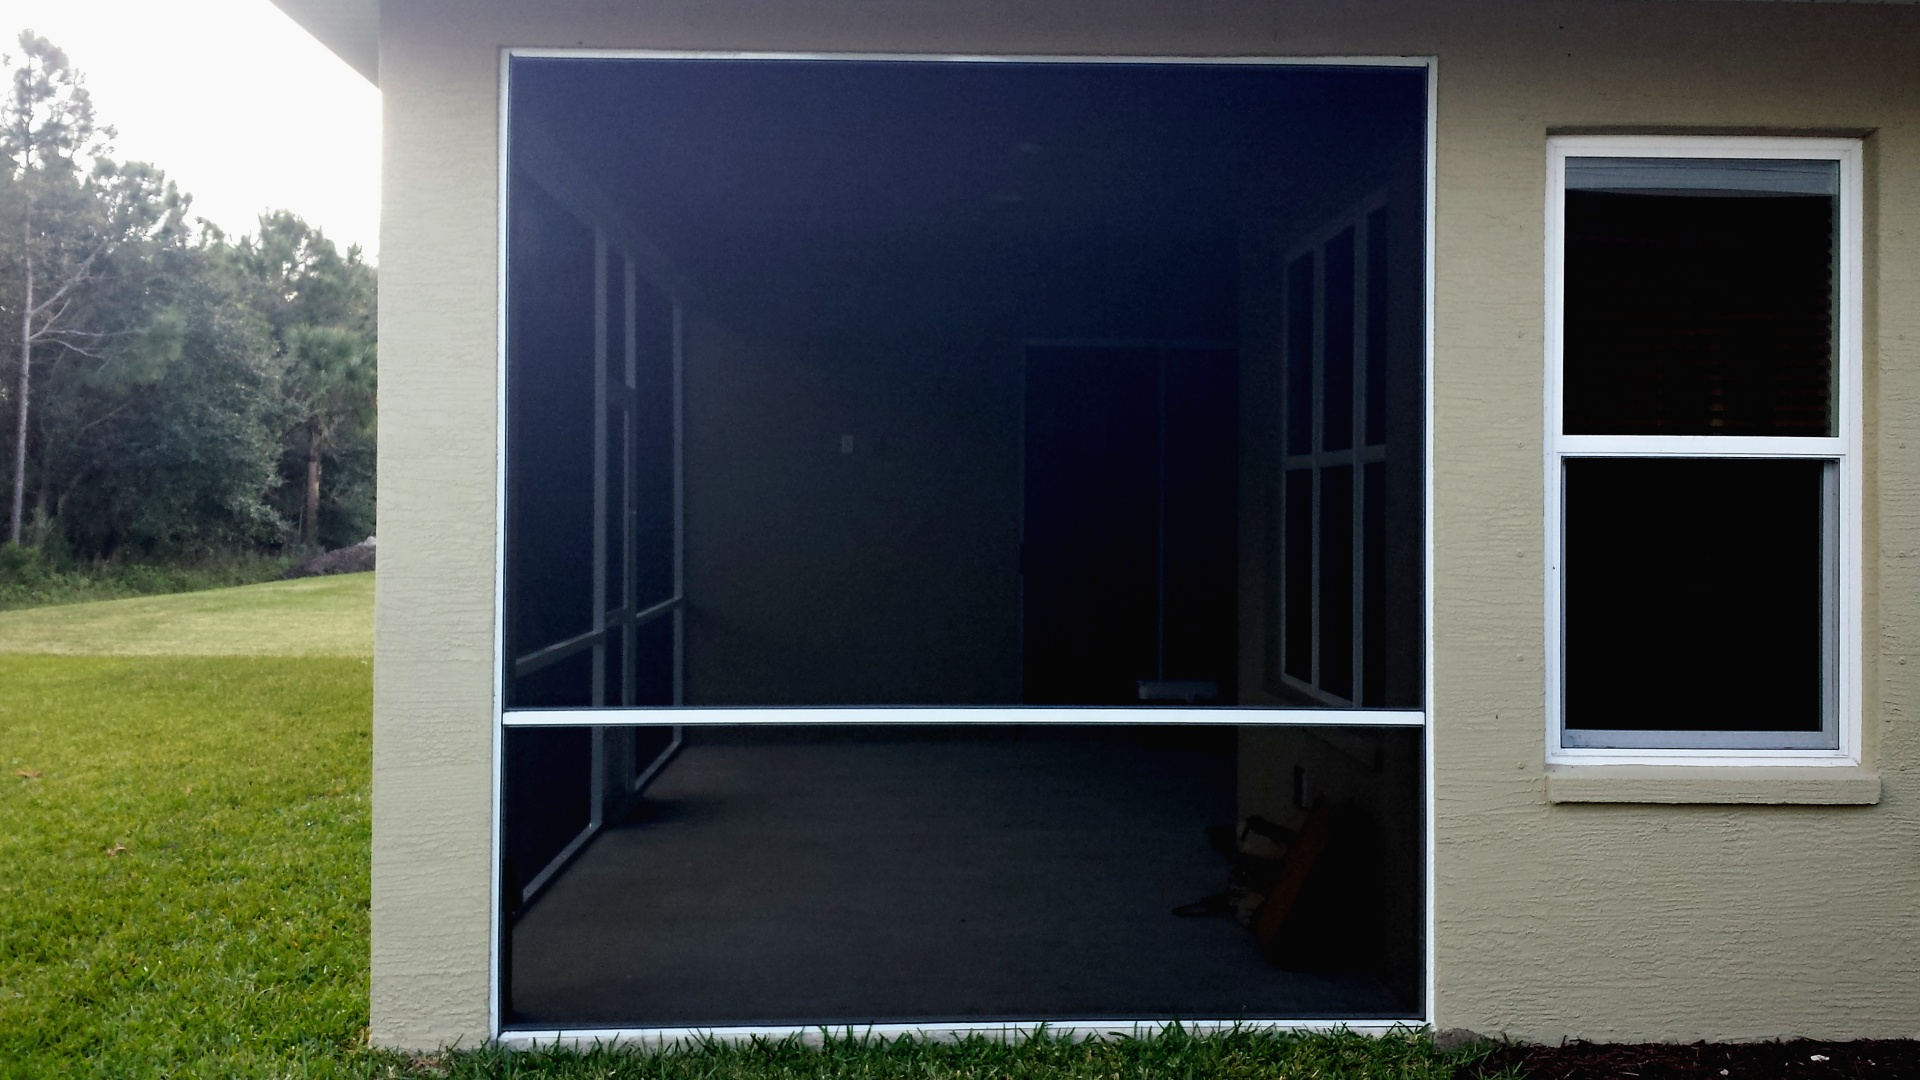 patio-screen-installation-new-smyrna-beach-06-1080p.jpg